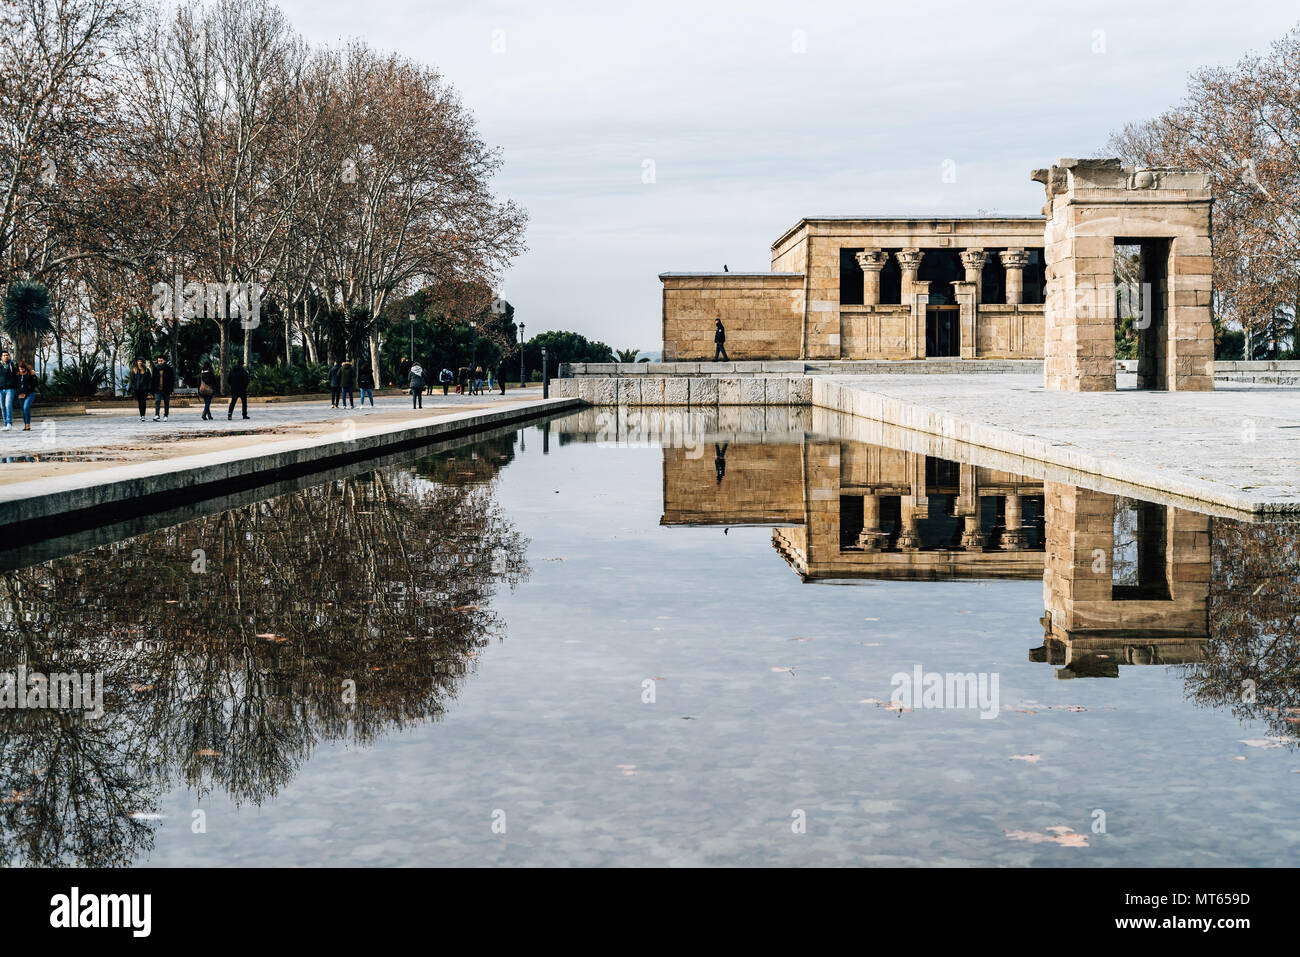 Madrid, Spain - January 13, 2018:  Temple Of Debod and water reflection Against Sky - Stock Image